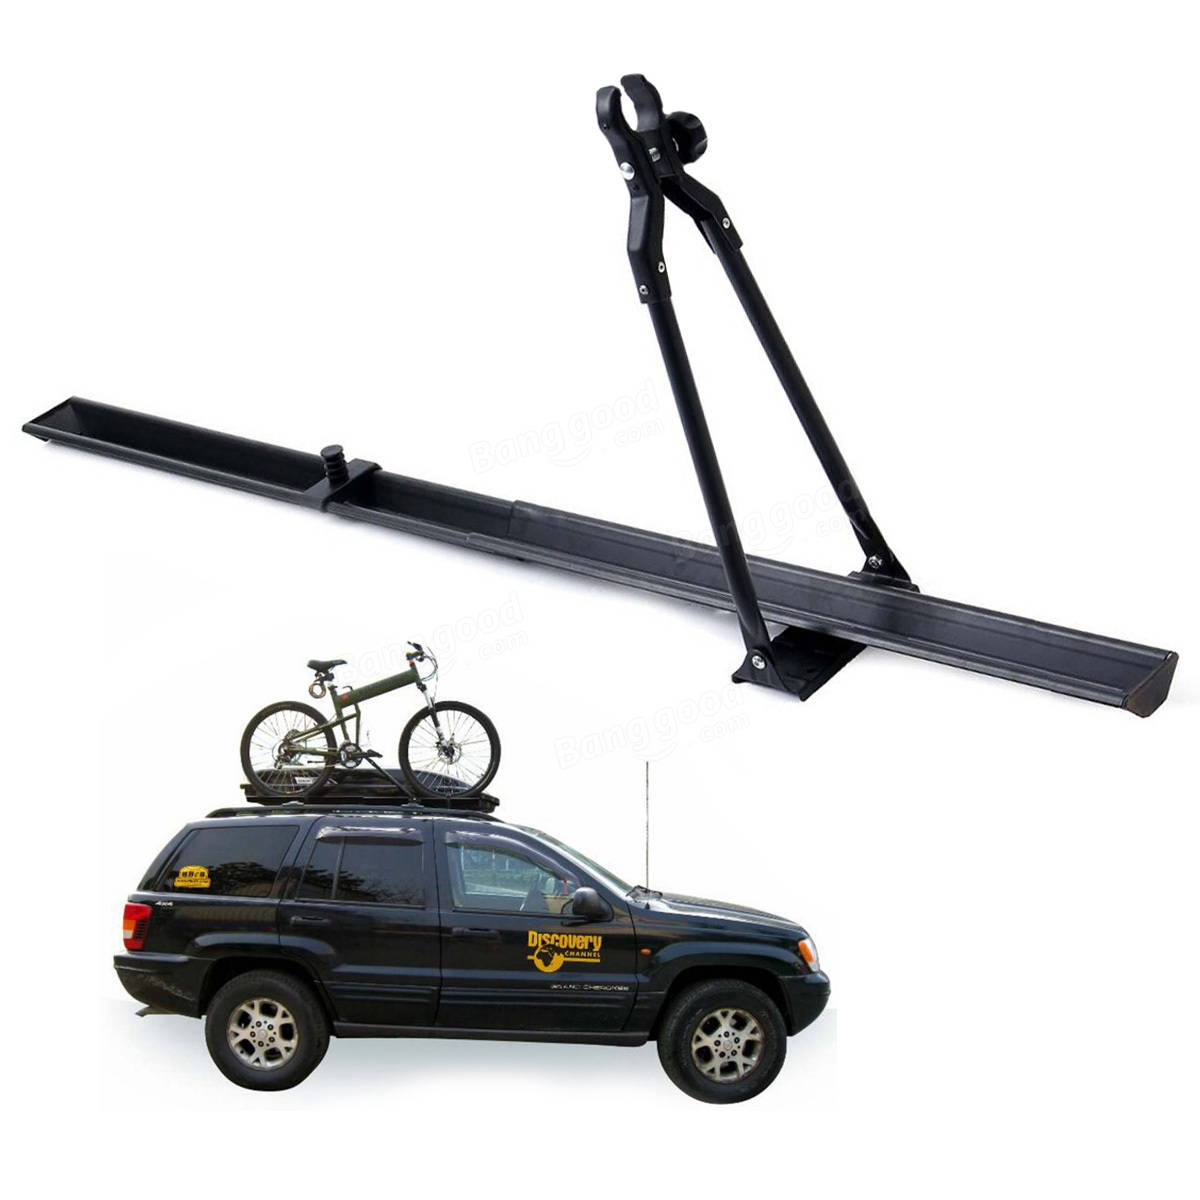 BIKIGHT Universal Car Roof Bike Carrier Top Mount Rack Bicycle Racks Travel Outdoors 150cm Fit for Most Car